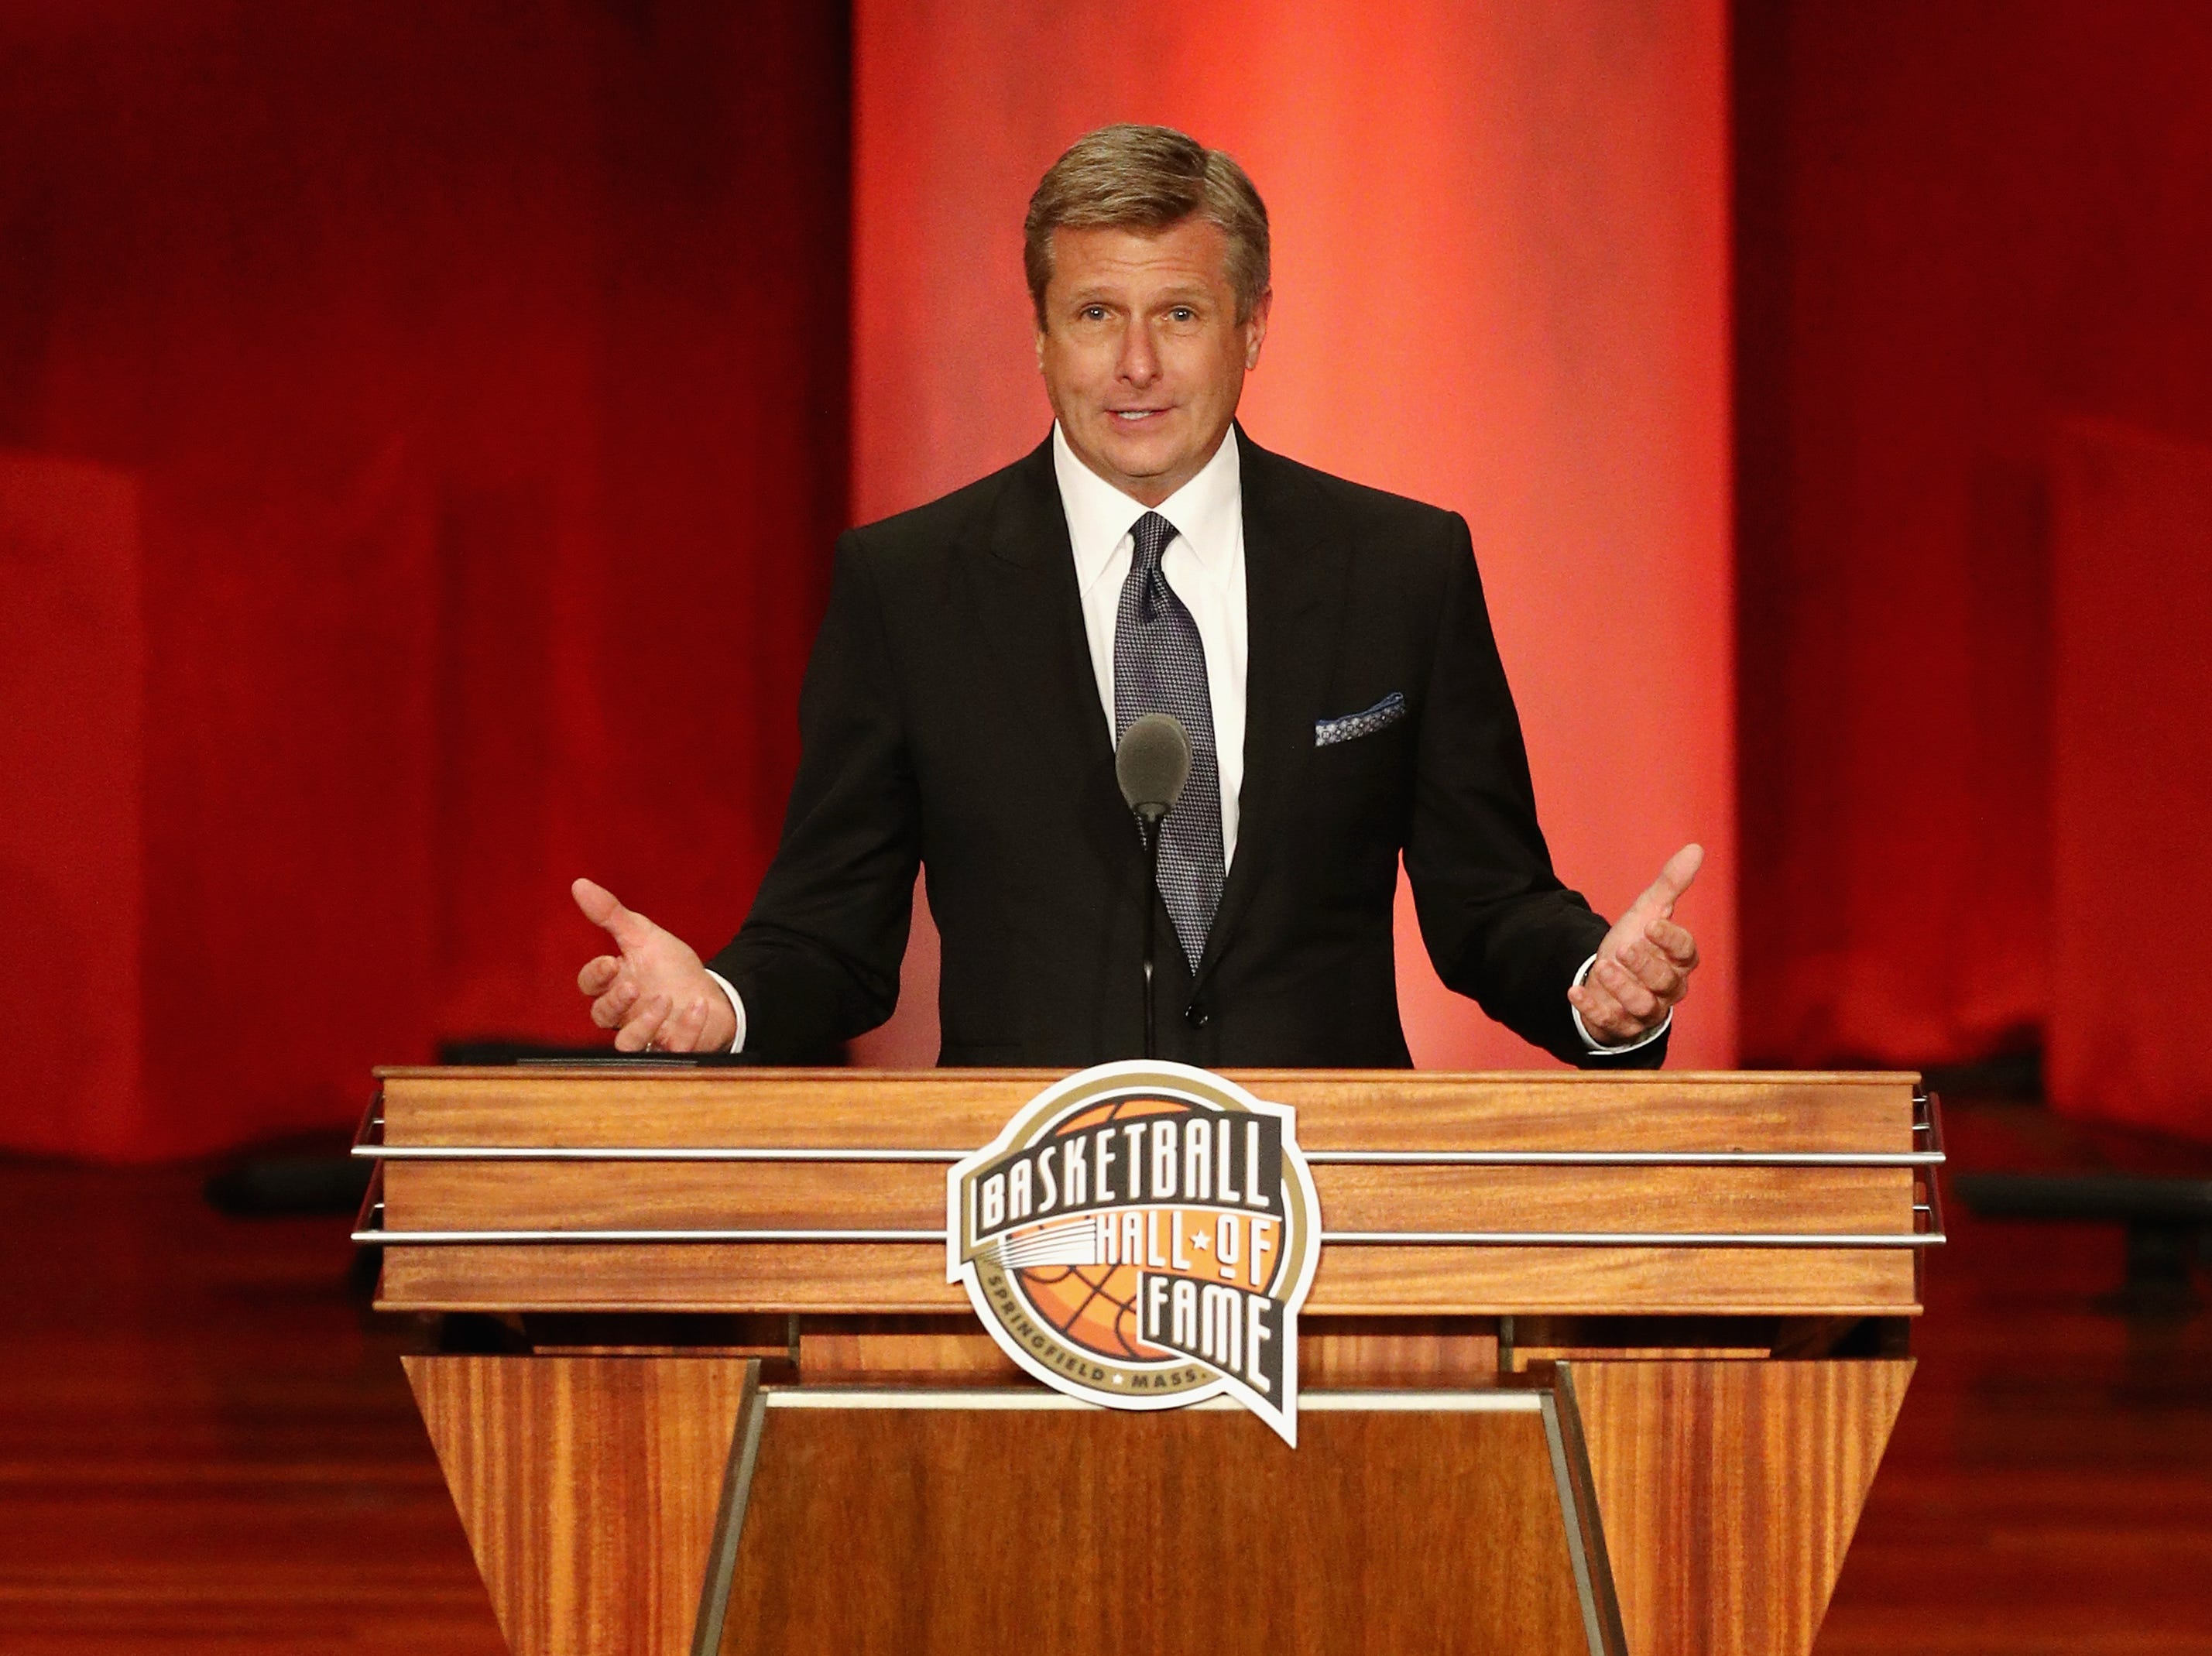 Rick Welts speaks during the 2018 Basketball Hall of Fame Enshrinement Ceremony.